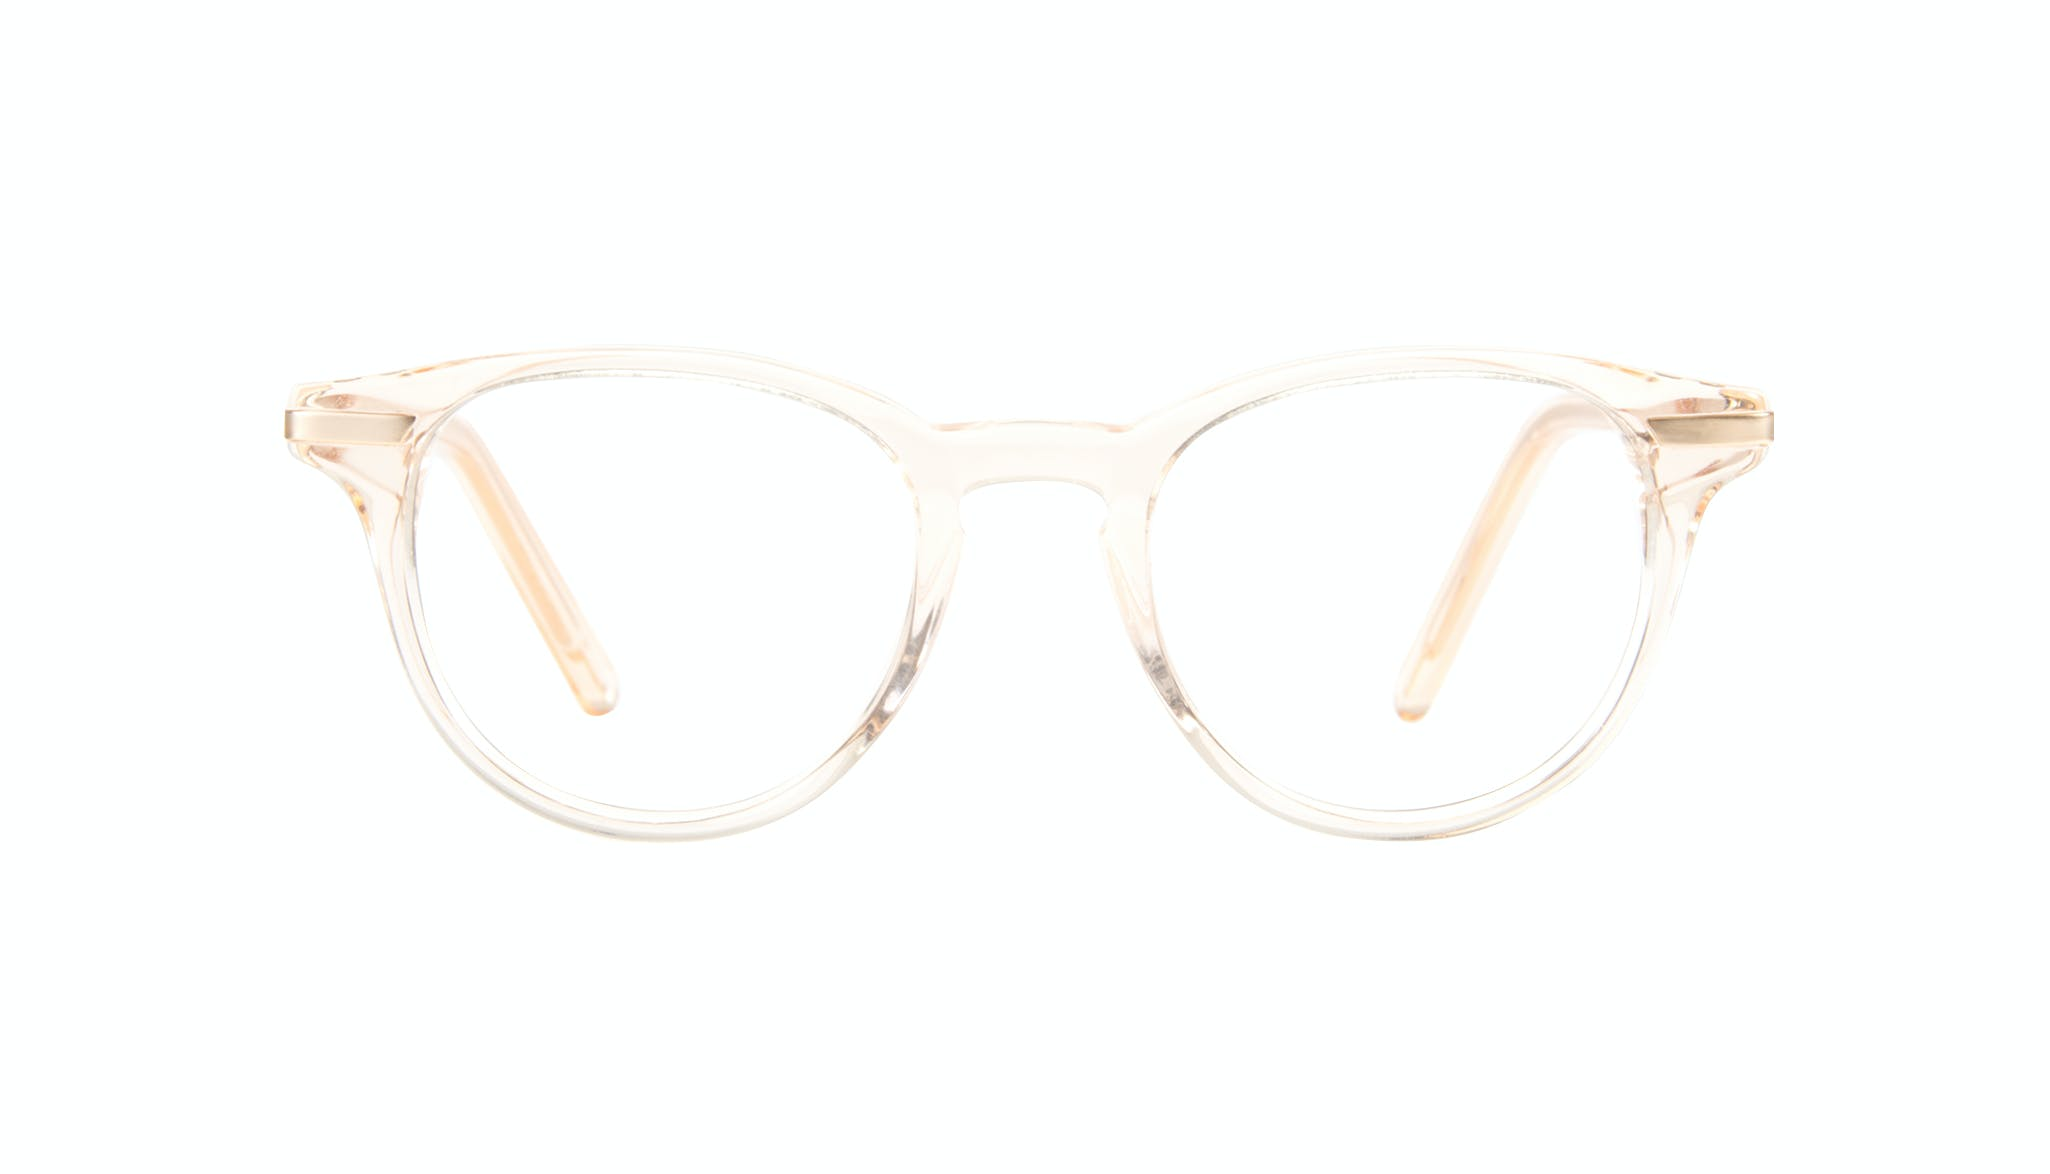 Affordable Fashion Glasses Round Eyeglasses Women Spark Blond Front